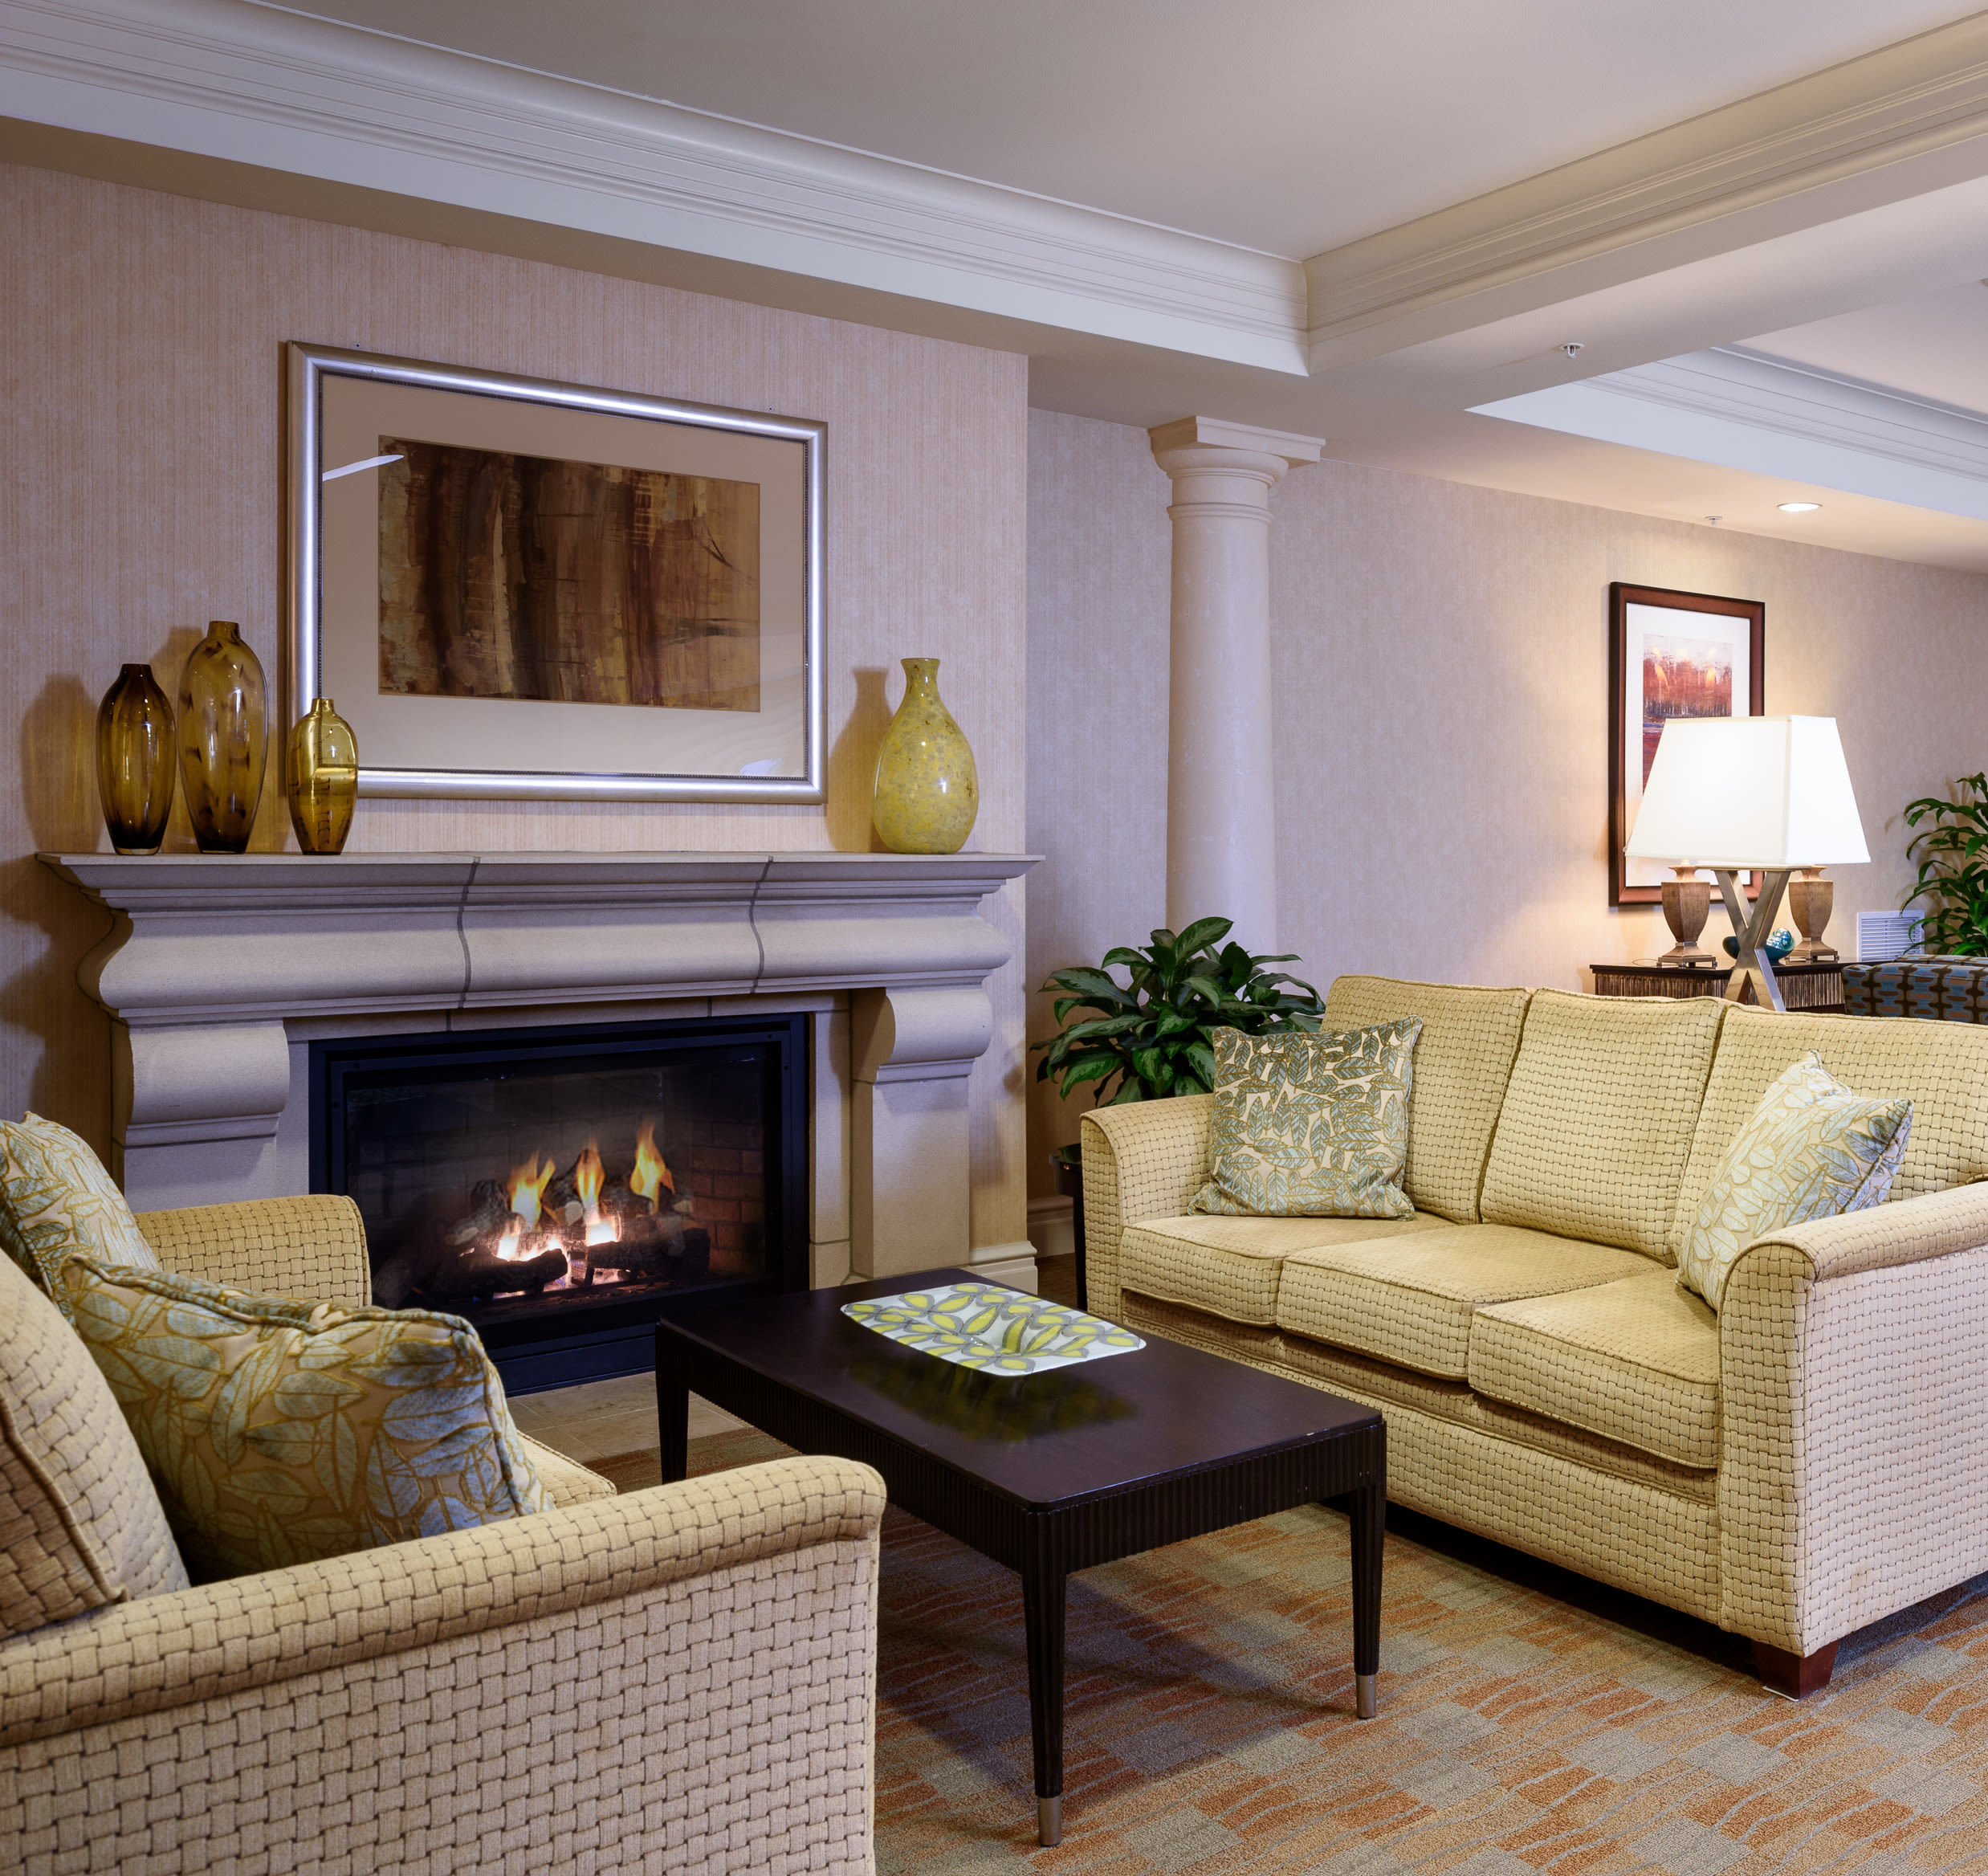 Common fireplace at The Bellettini in Bellevue, Washington